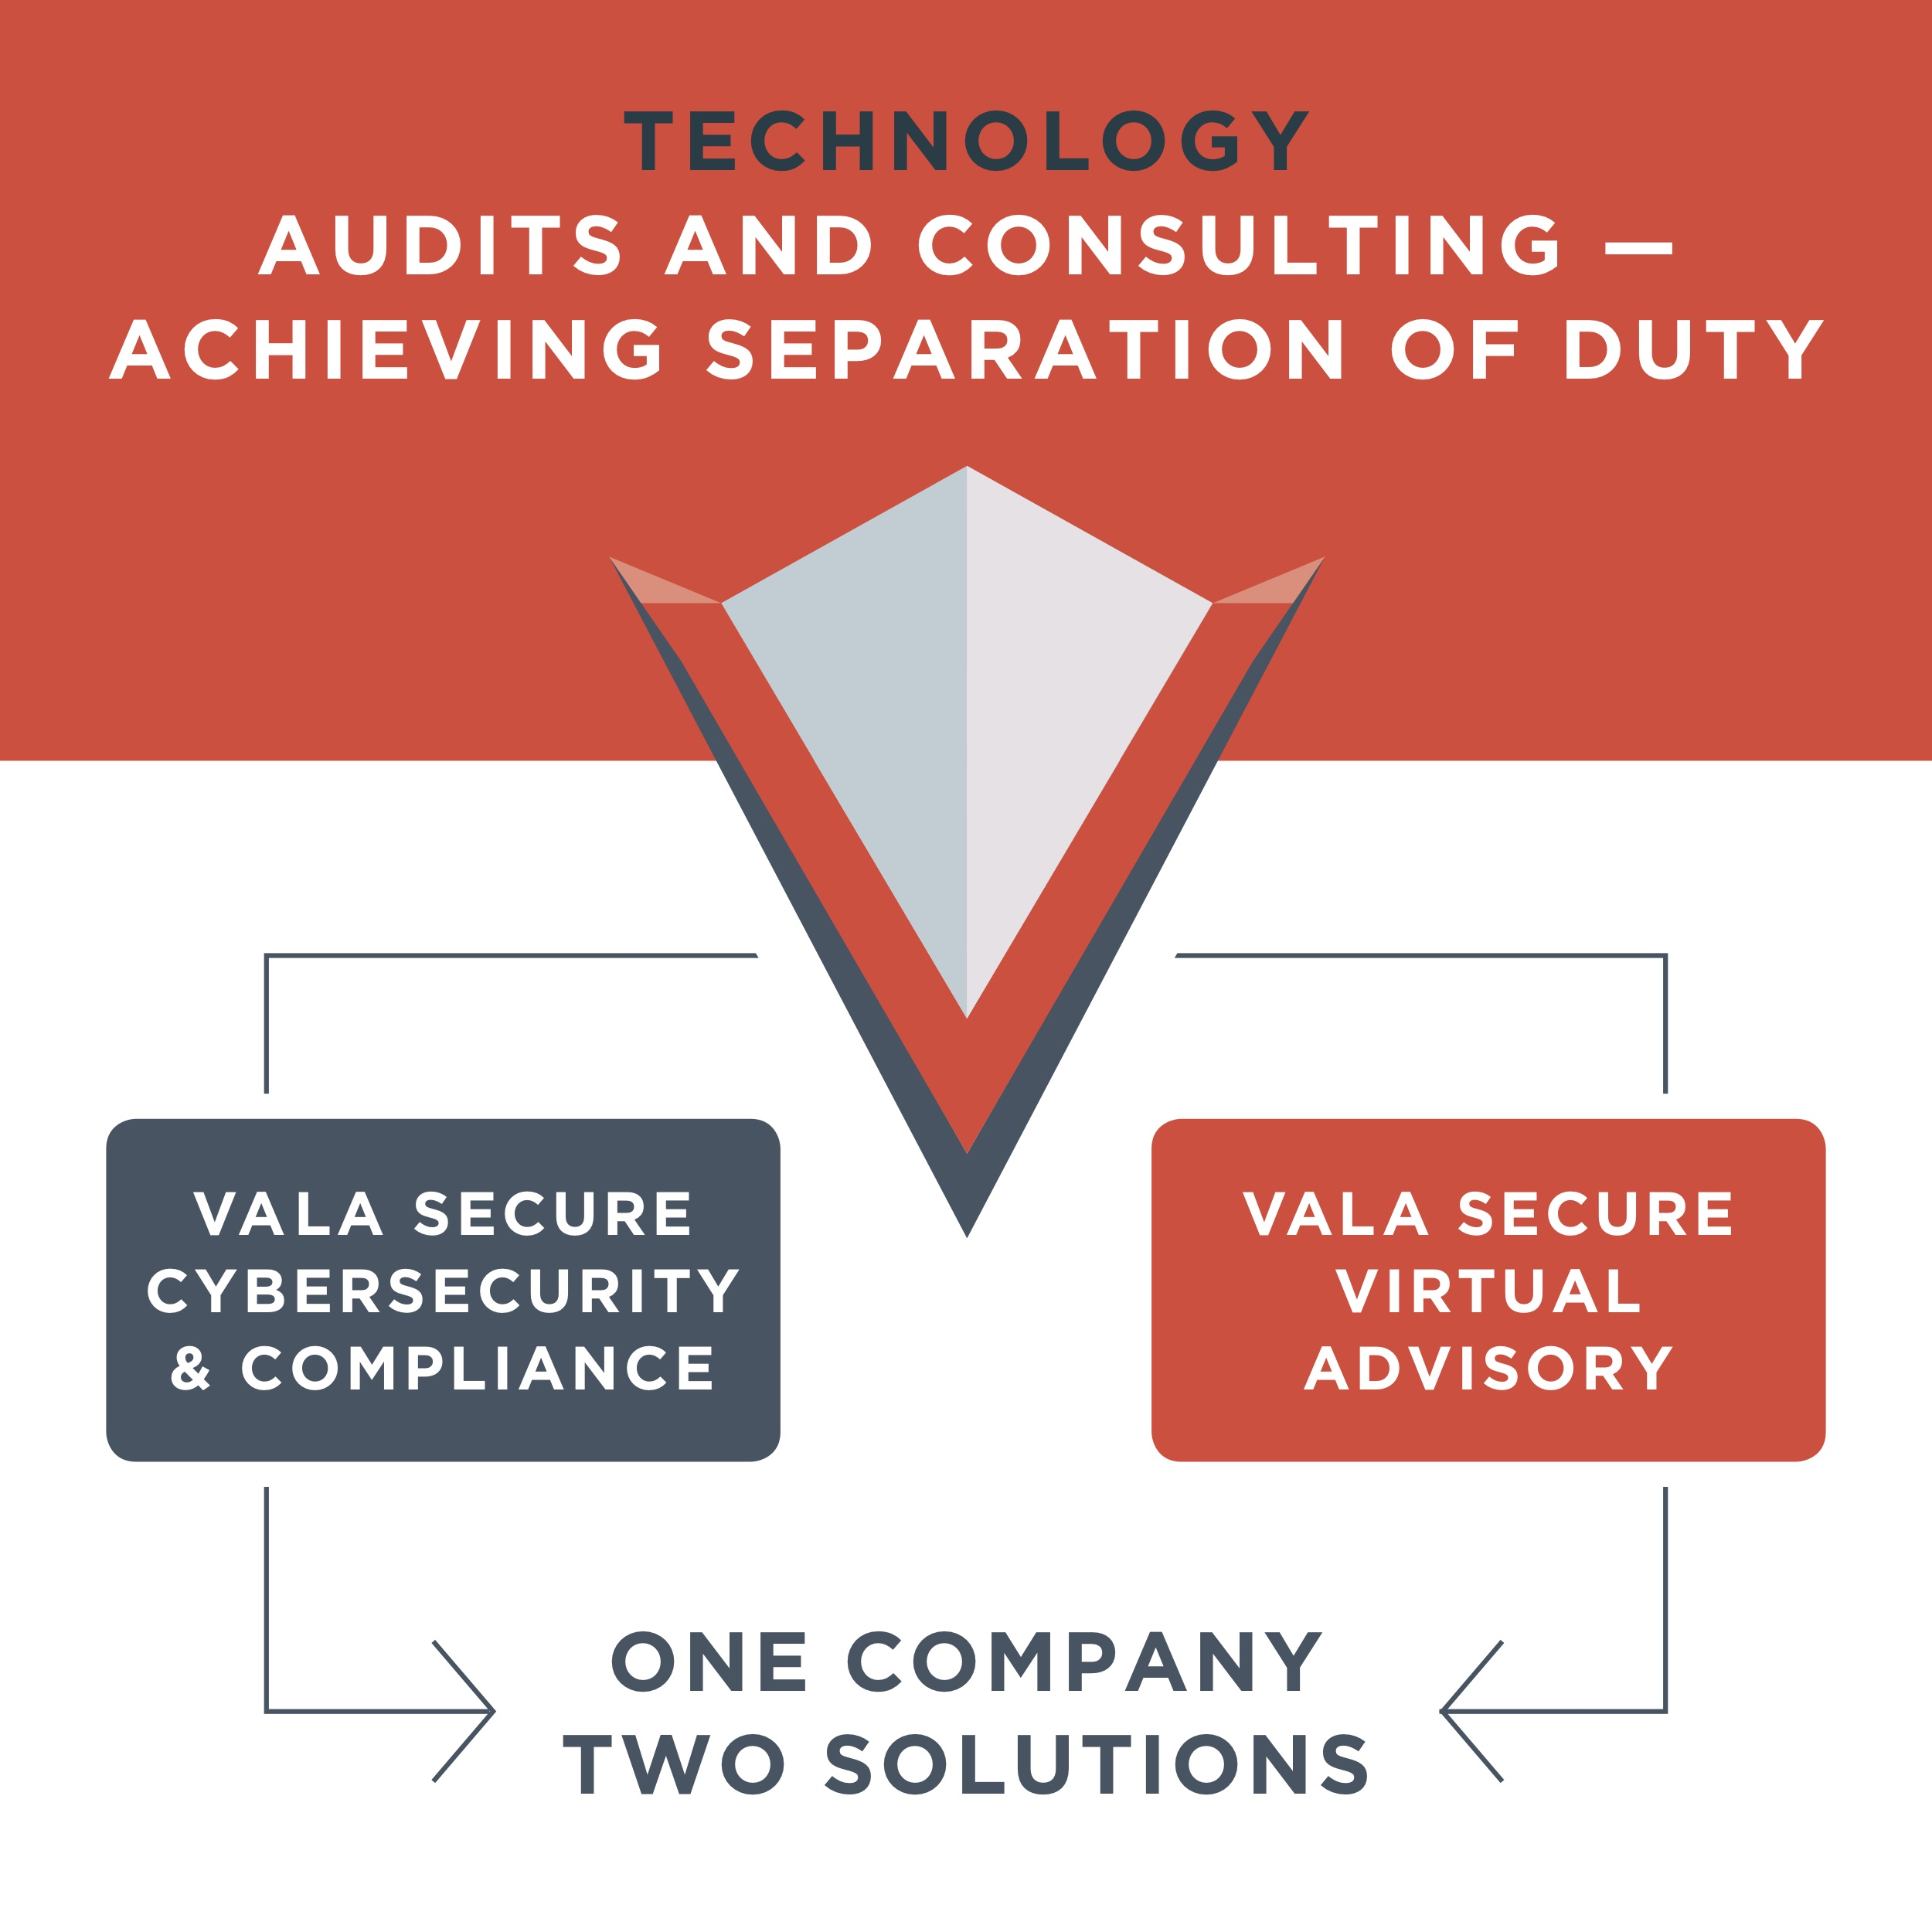 Technology Audits and Consulting - Achieving Separation of Duty - Vala Secure1